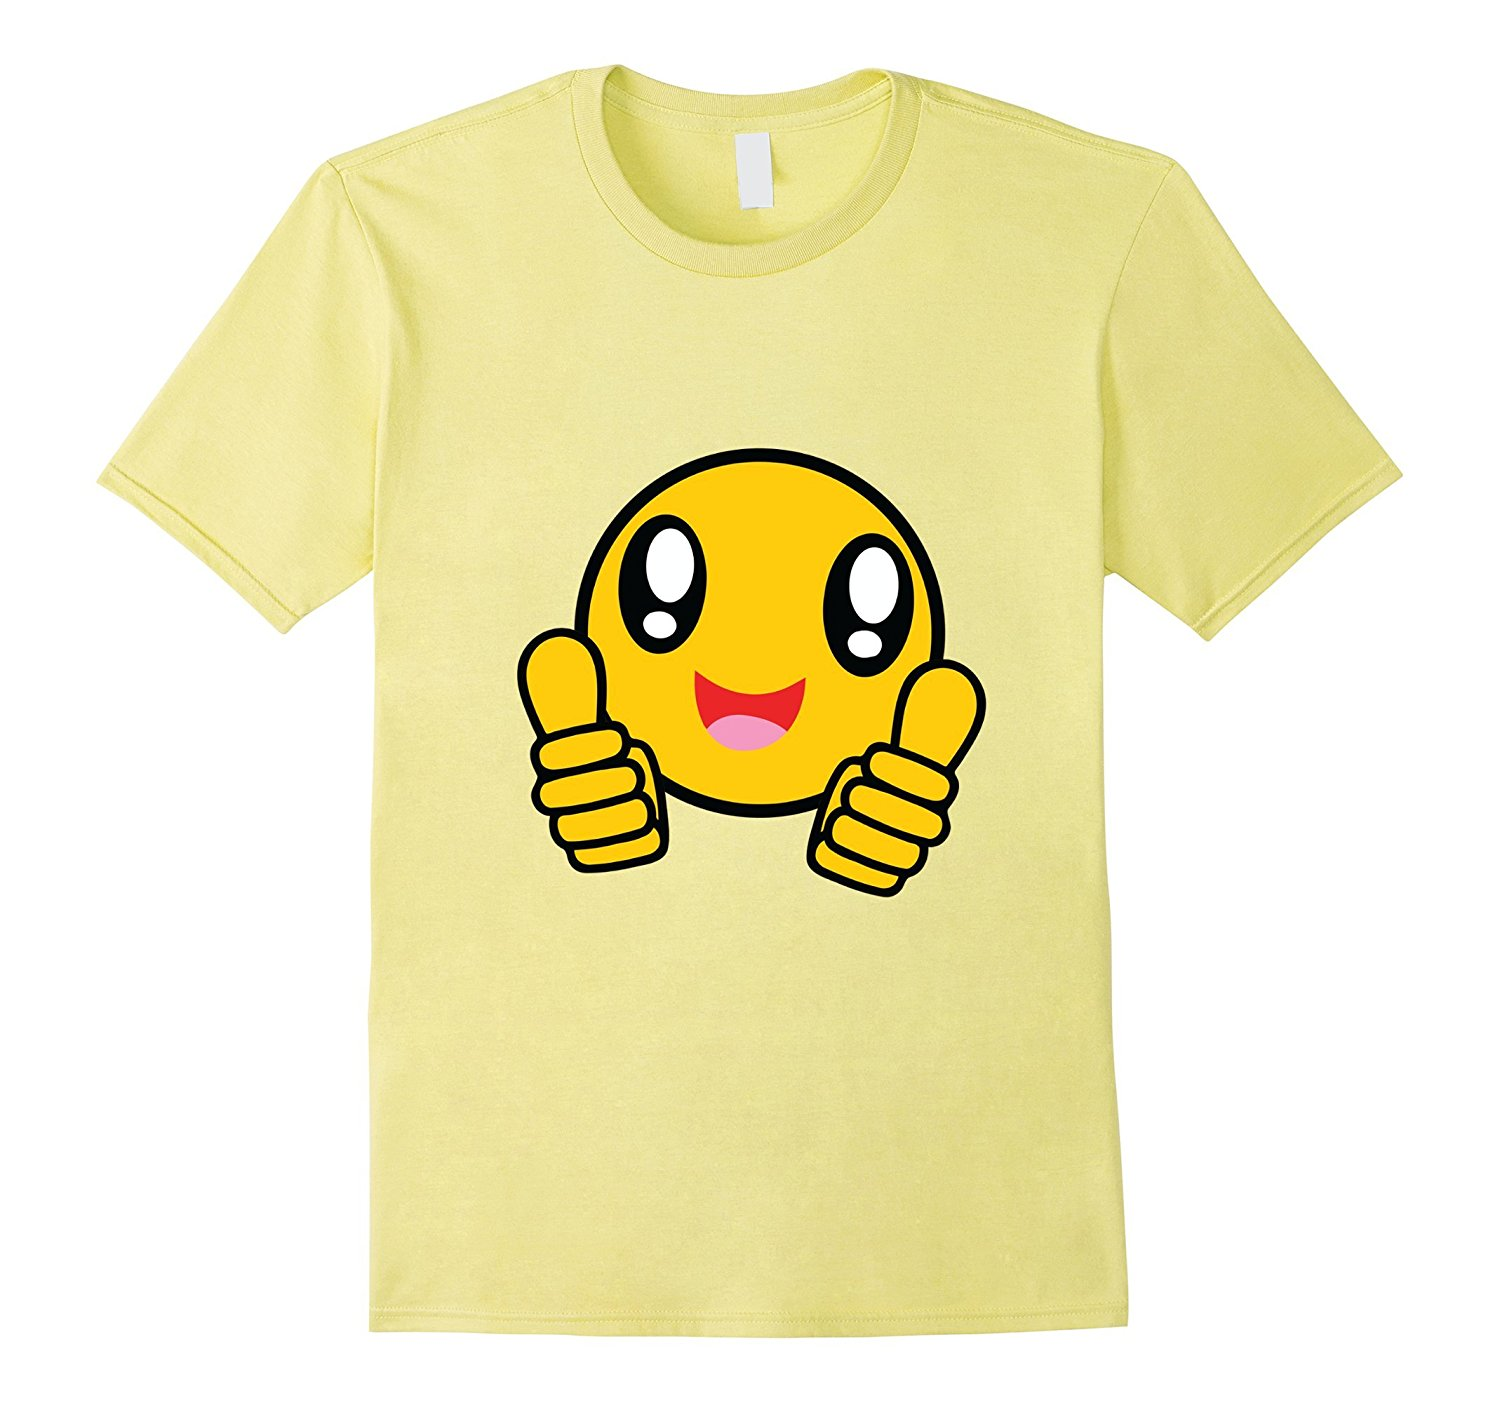 1500x1403 Two Thumbs Up Hands Emoji T Shirt Happy Smile Big Eyes Top